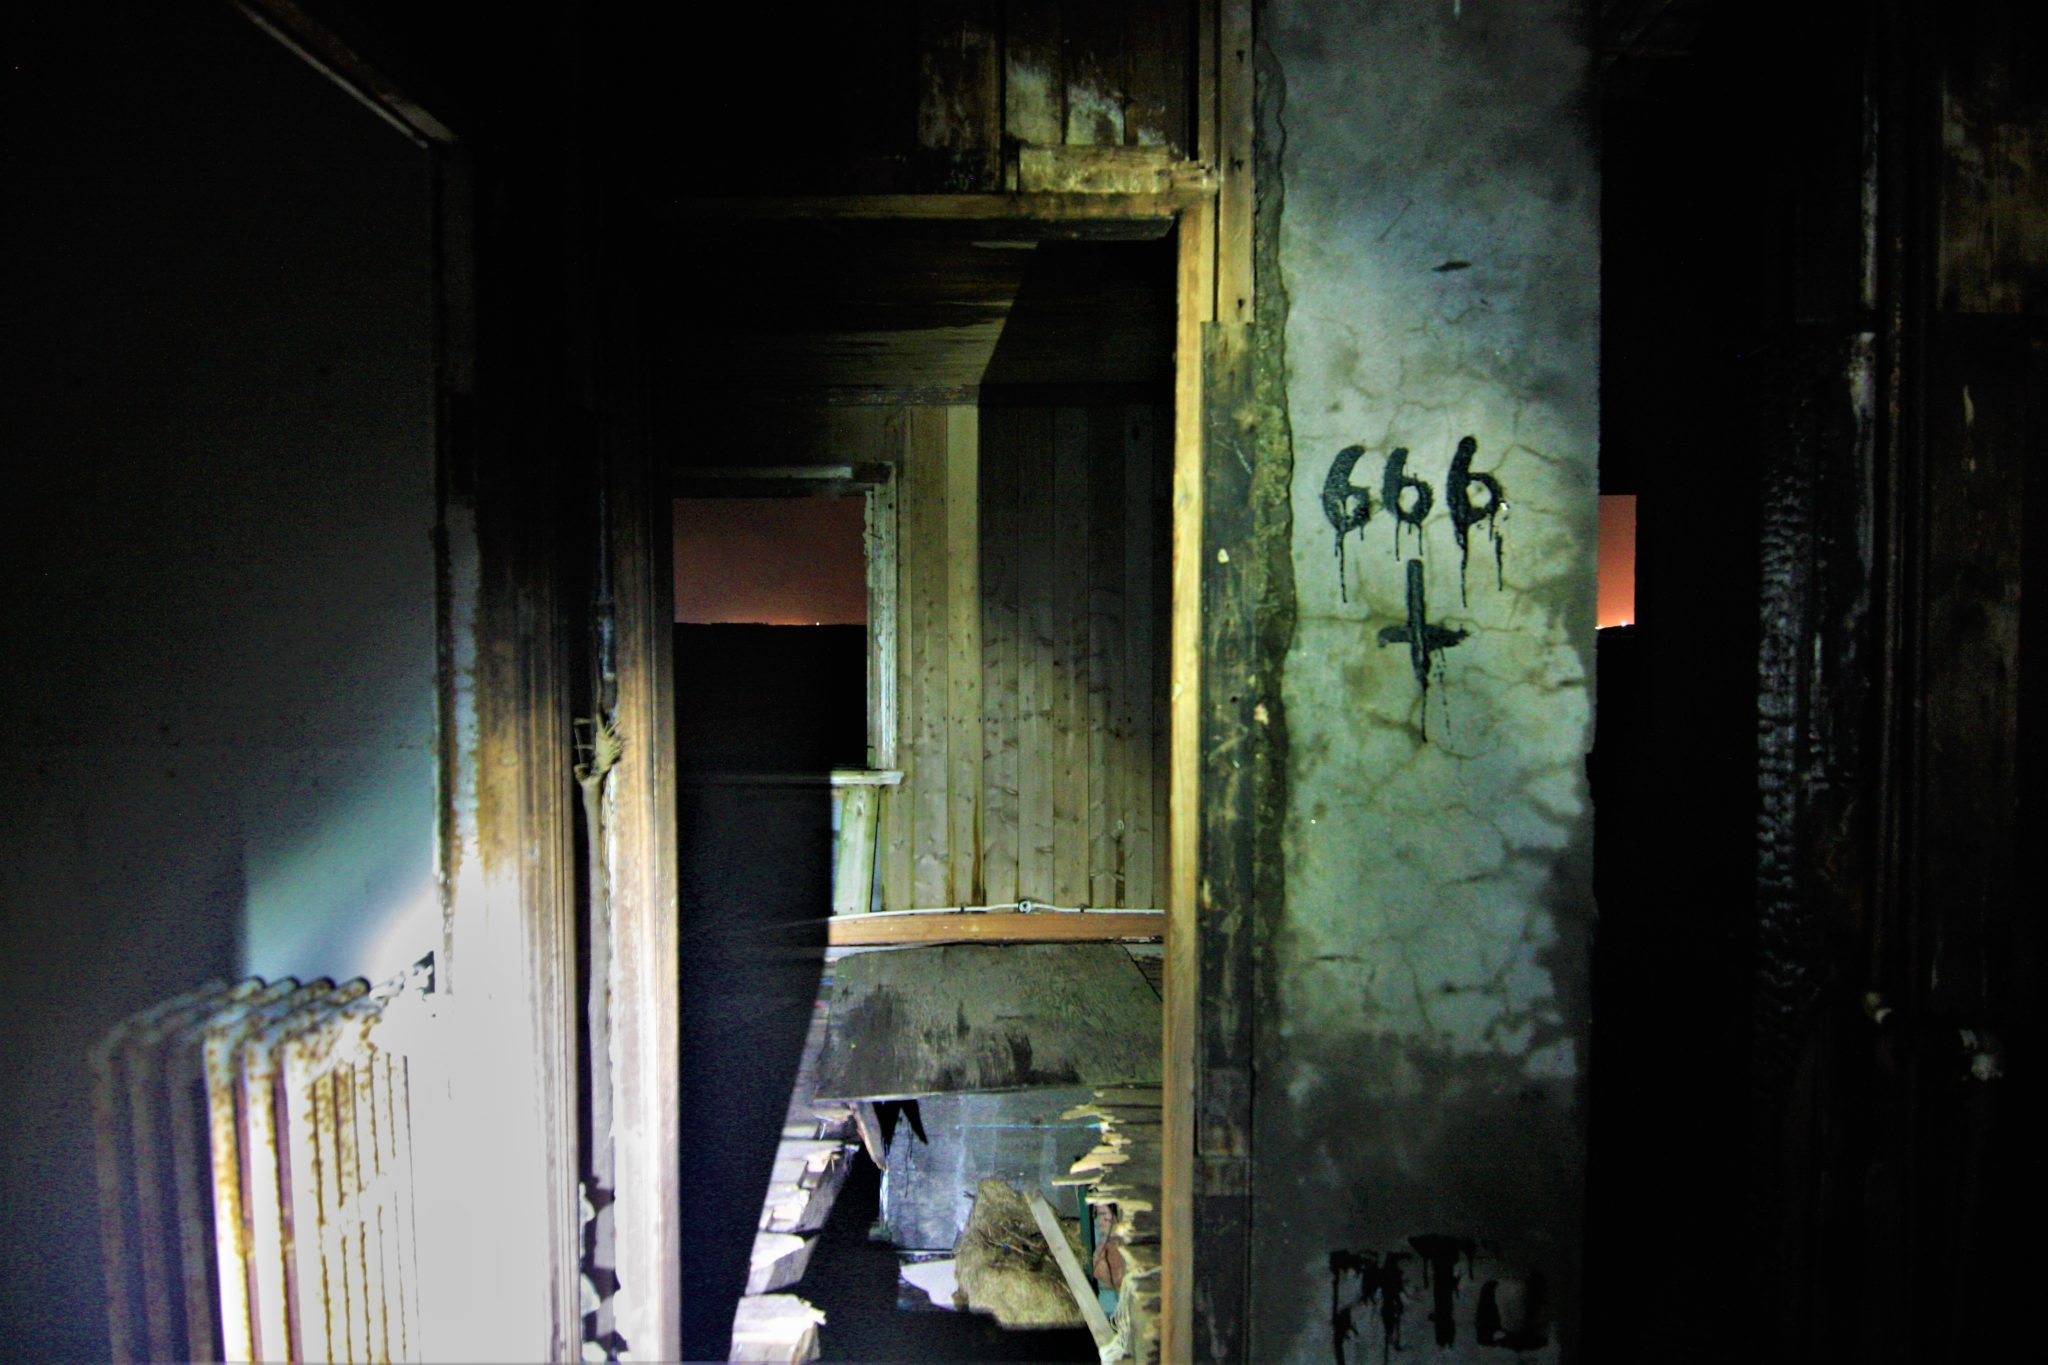 666 inside the ghost house, Happy World Northern Lights tour, Iceland